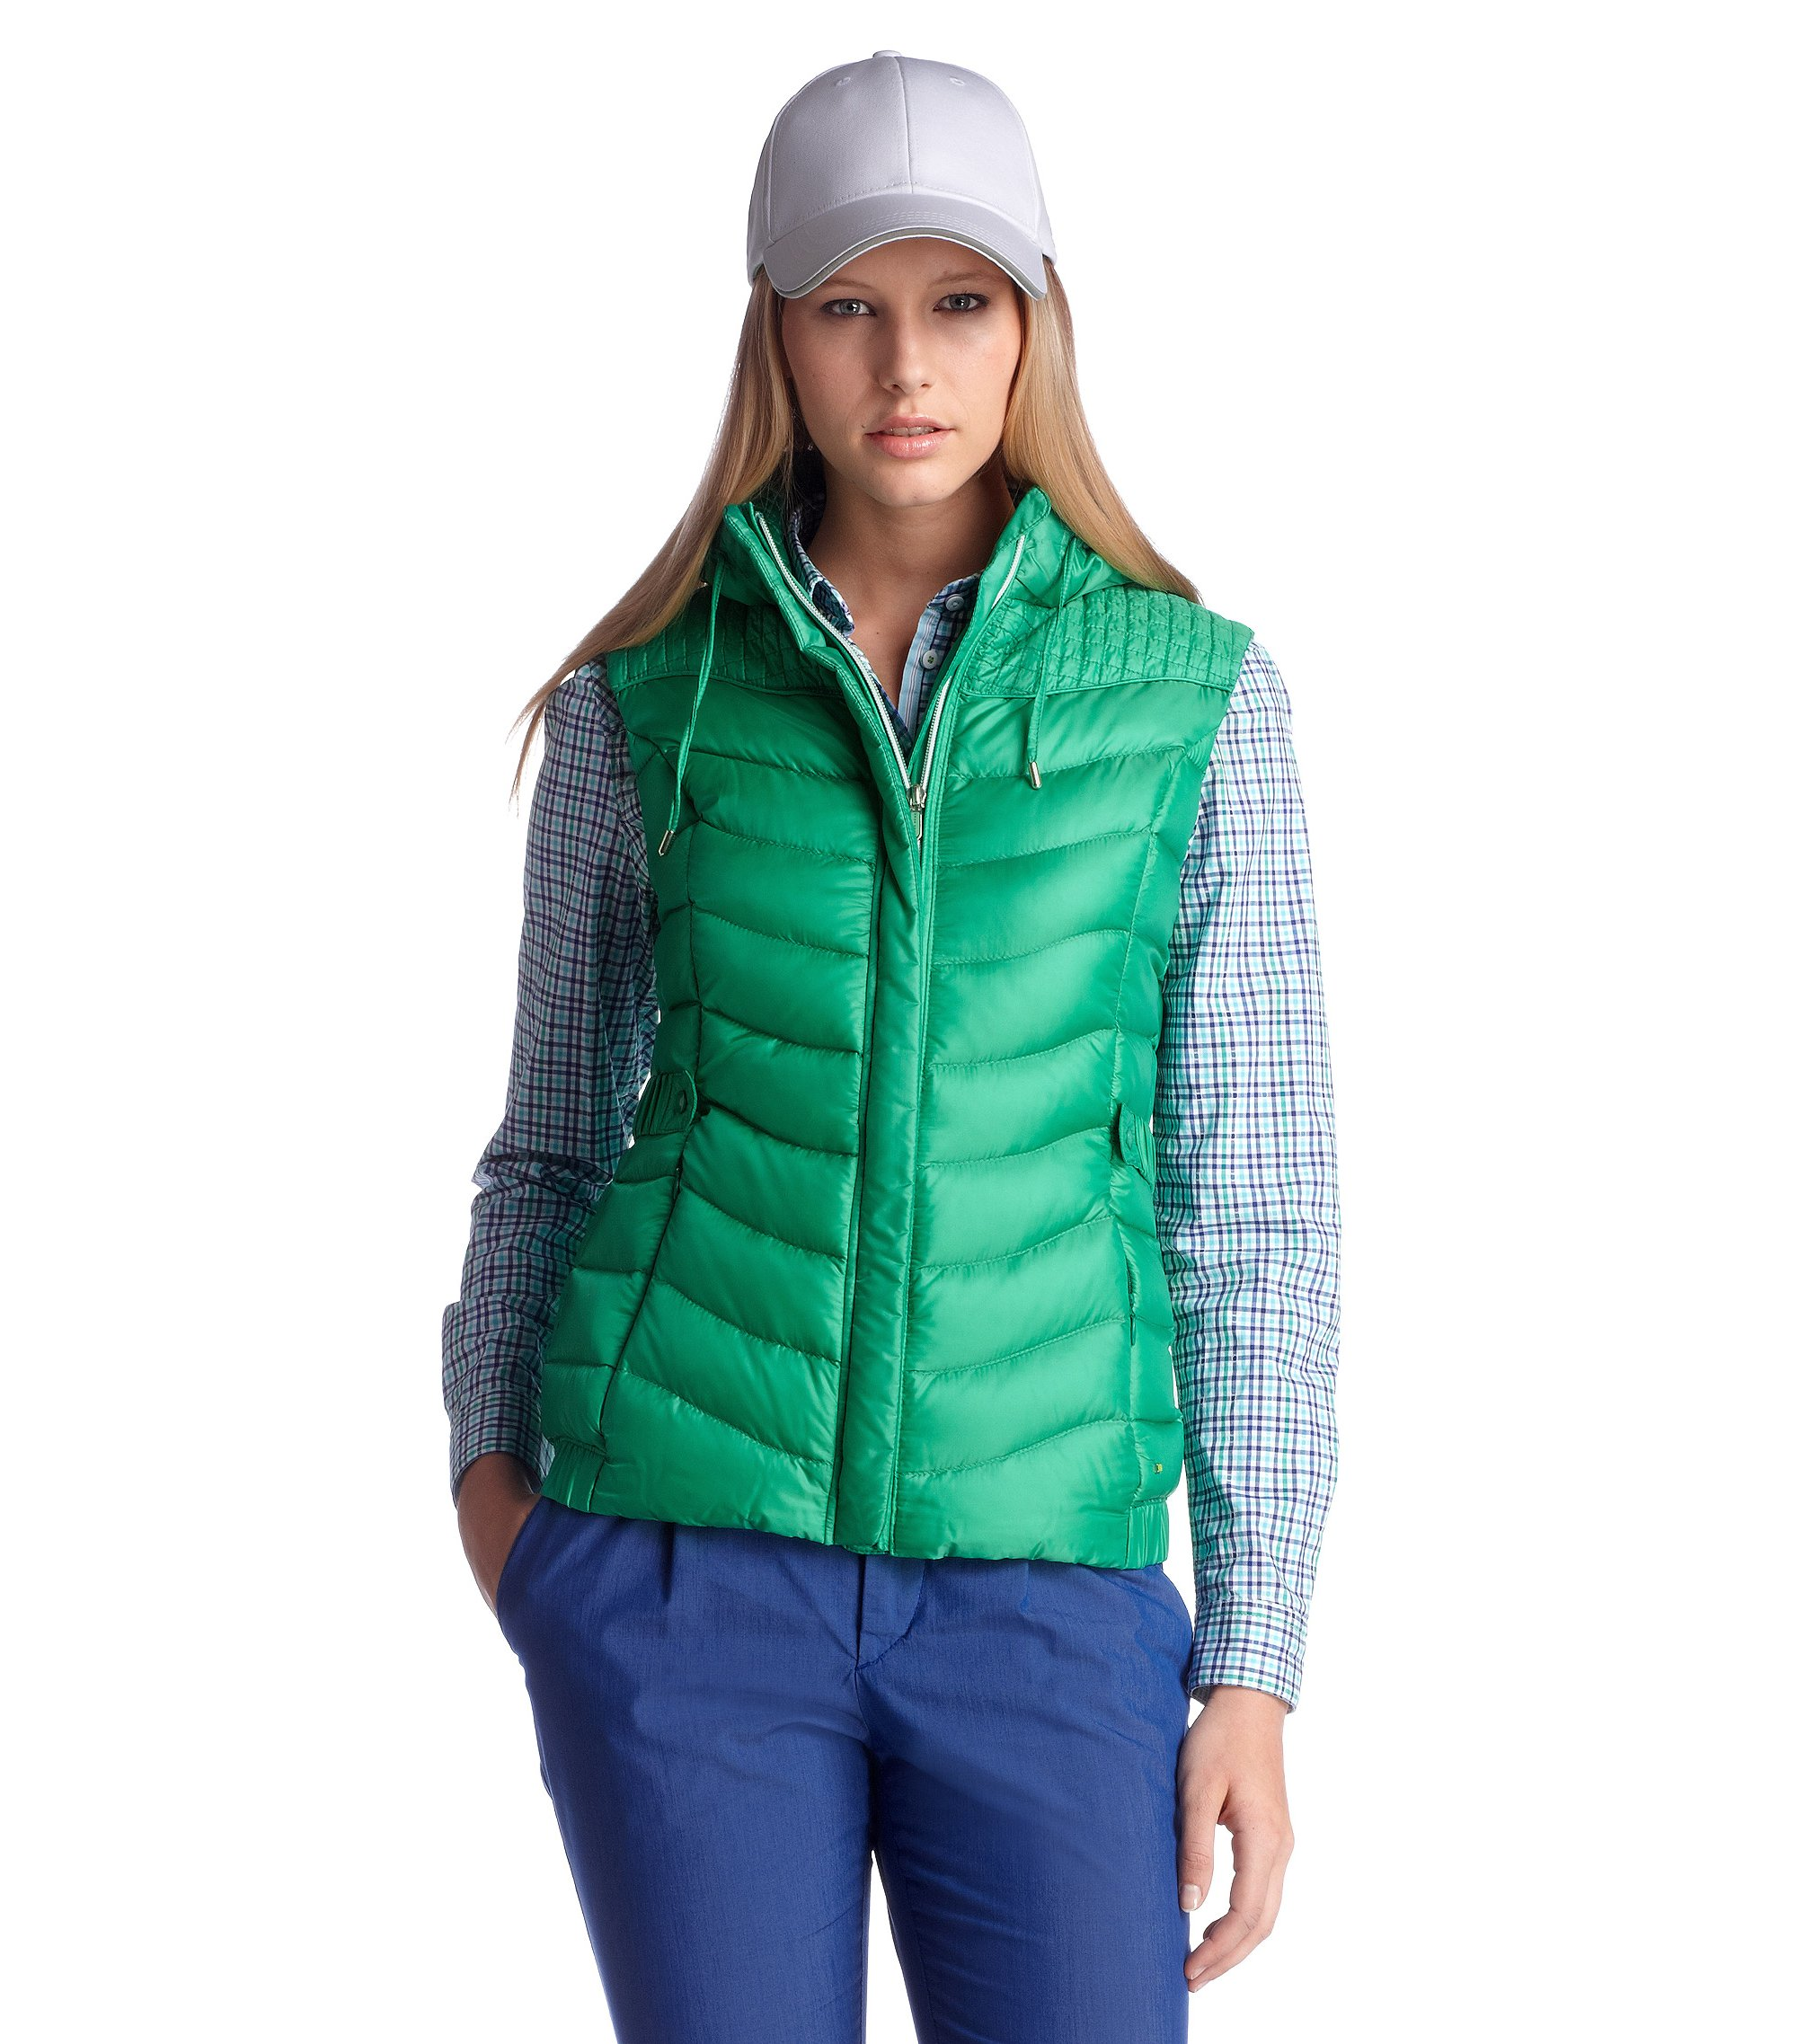 Down body warmer with band collar 'Jiovane', Green